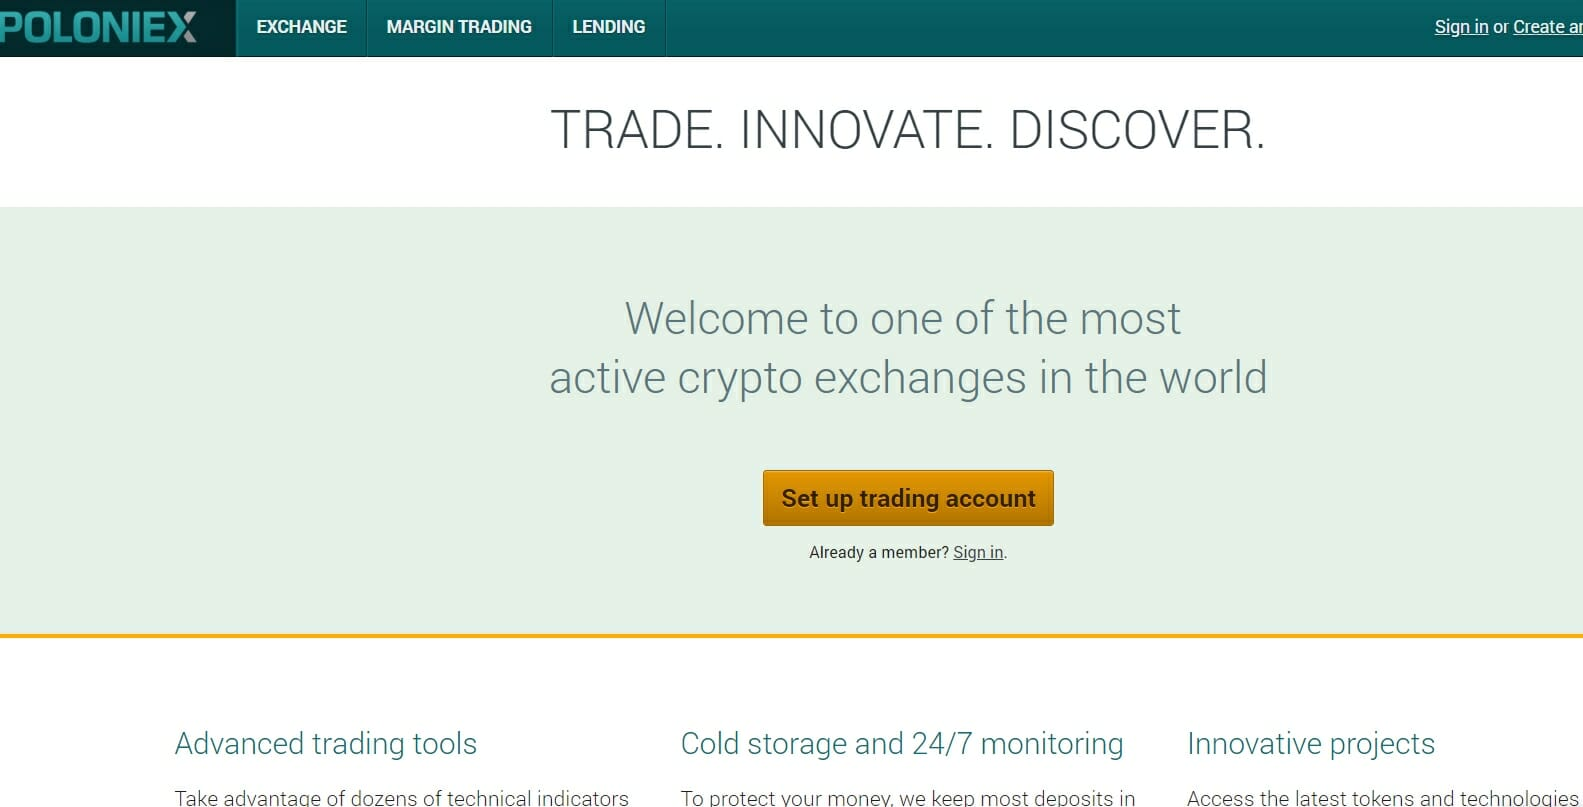 Poloniex BTC exchange